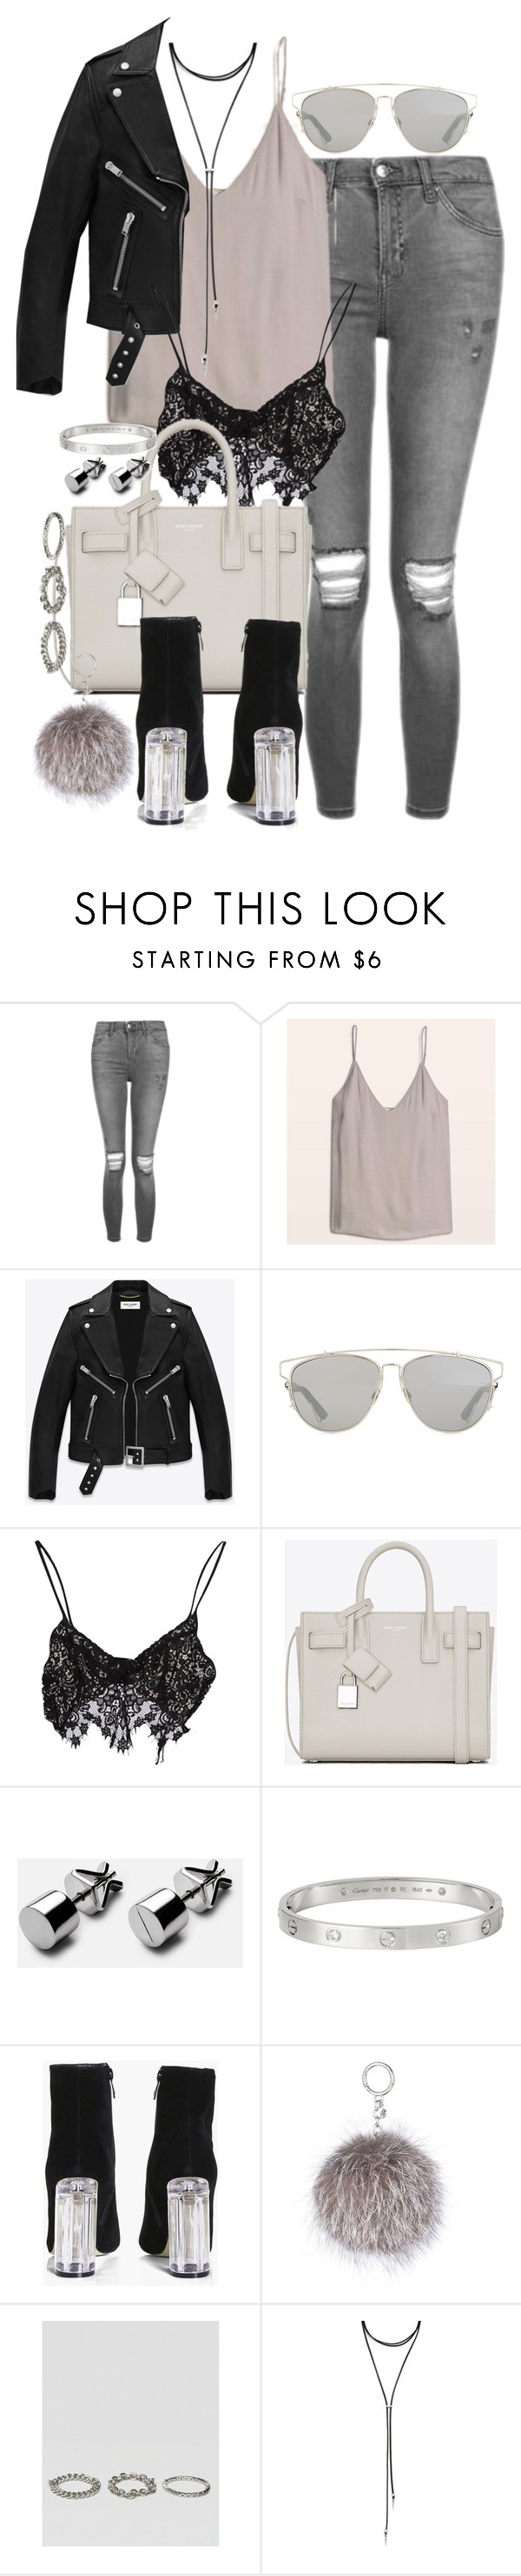 """Untitled #142"" by marinas-clothes ❤ liked on Polyvore featuring Topshop, Yves Saint Laurent, Christian Dior, For Love & Lemons, Cartier, Boohoo, MICHAEL Michael Kors, ASOS and Forever 21"